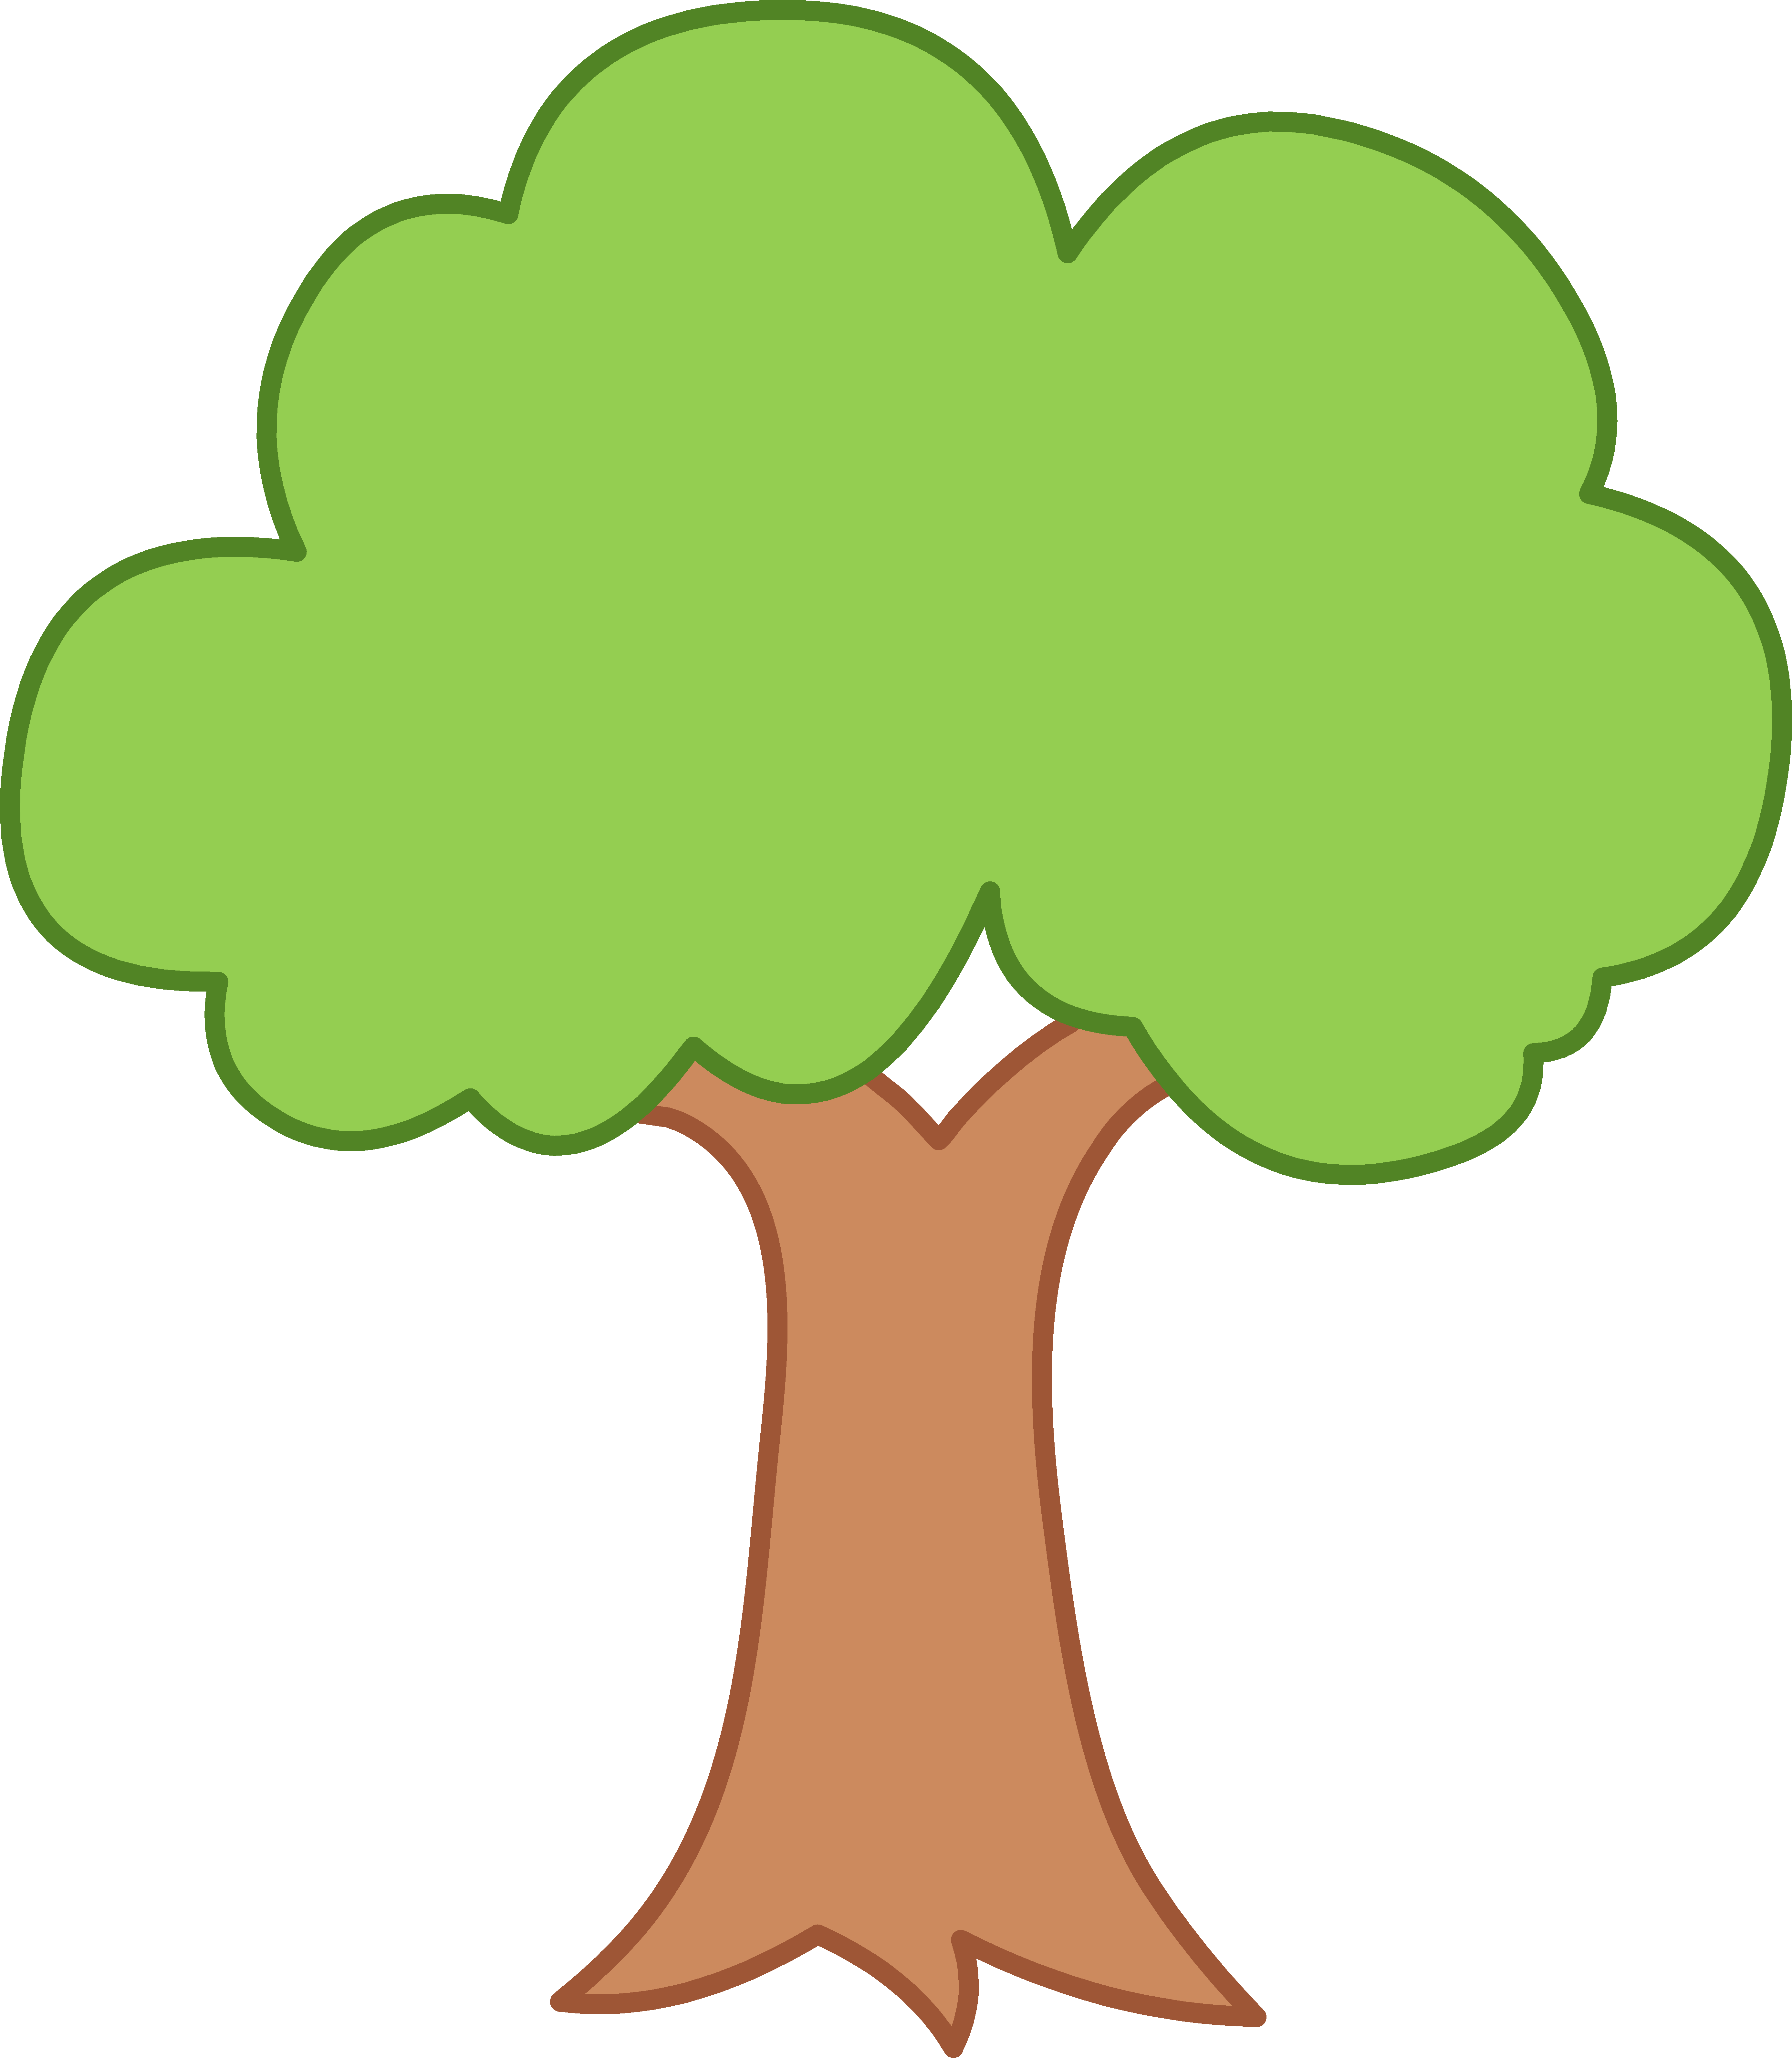 tree drawing clip art at getdrawings com free for personal use rh getdrawings com